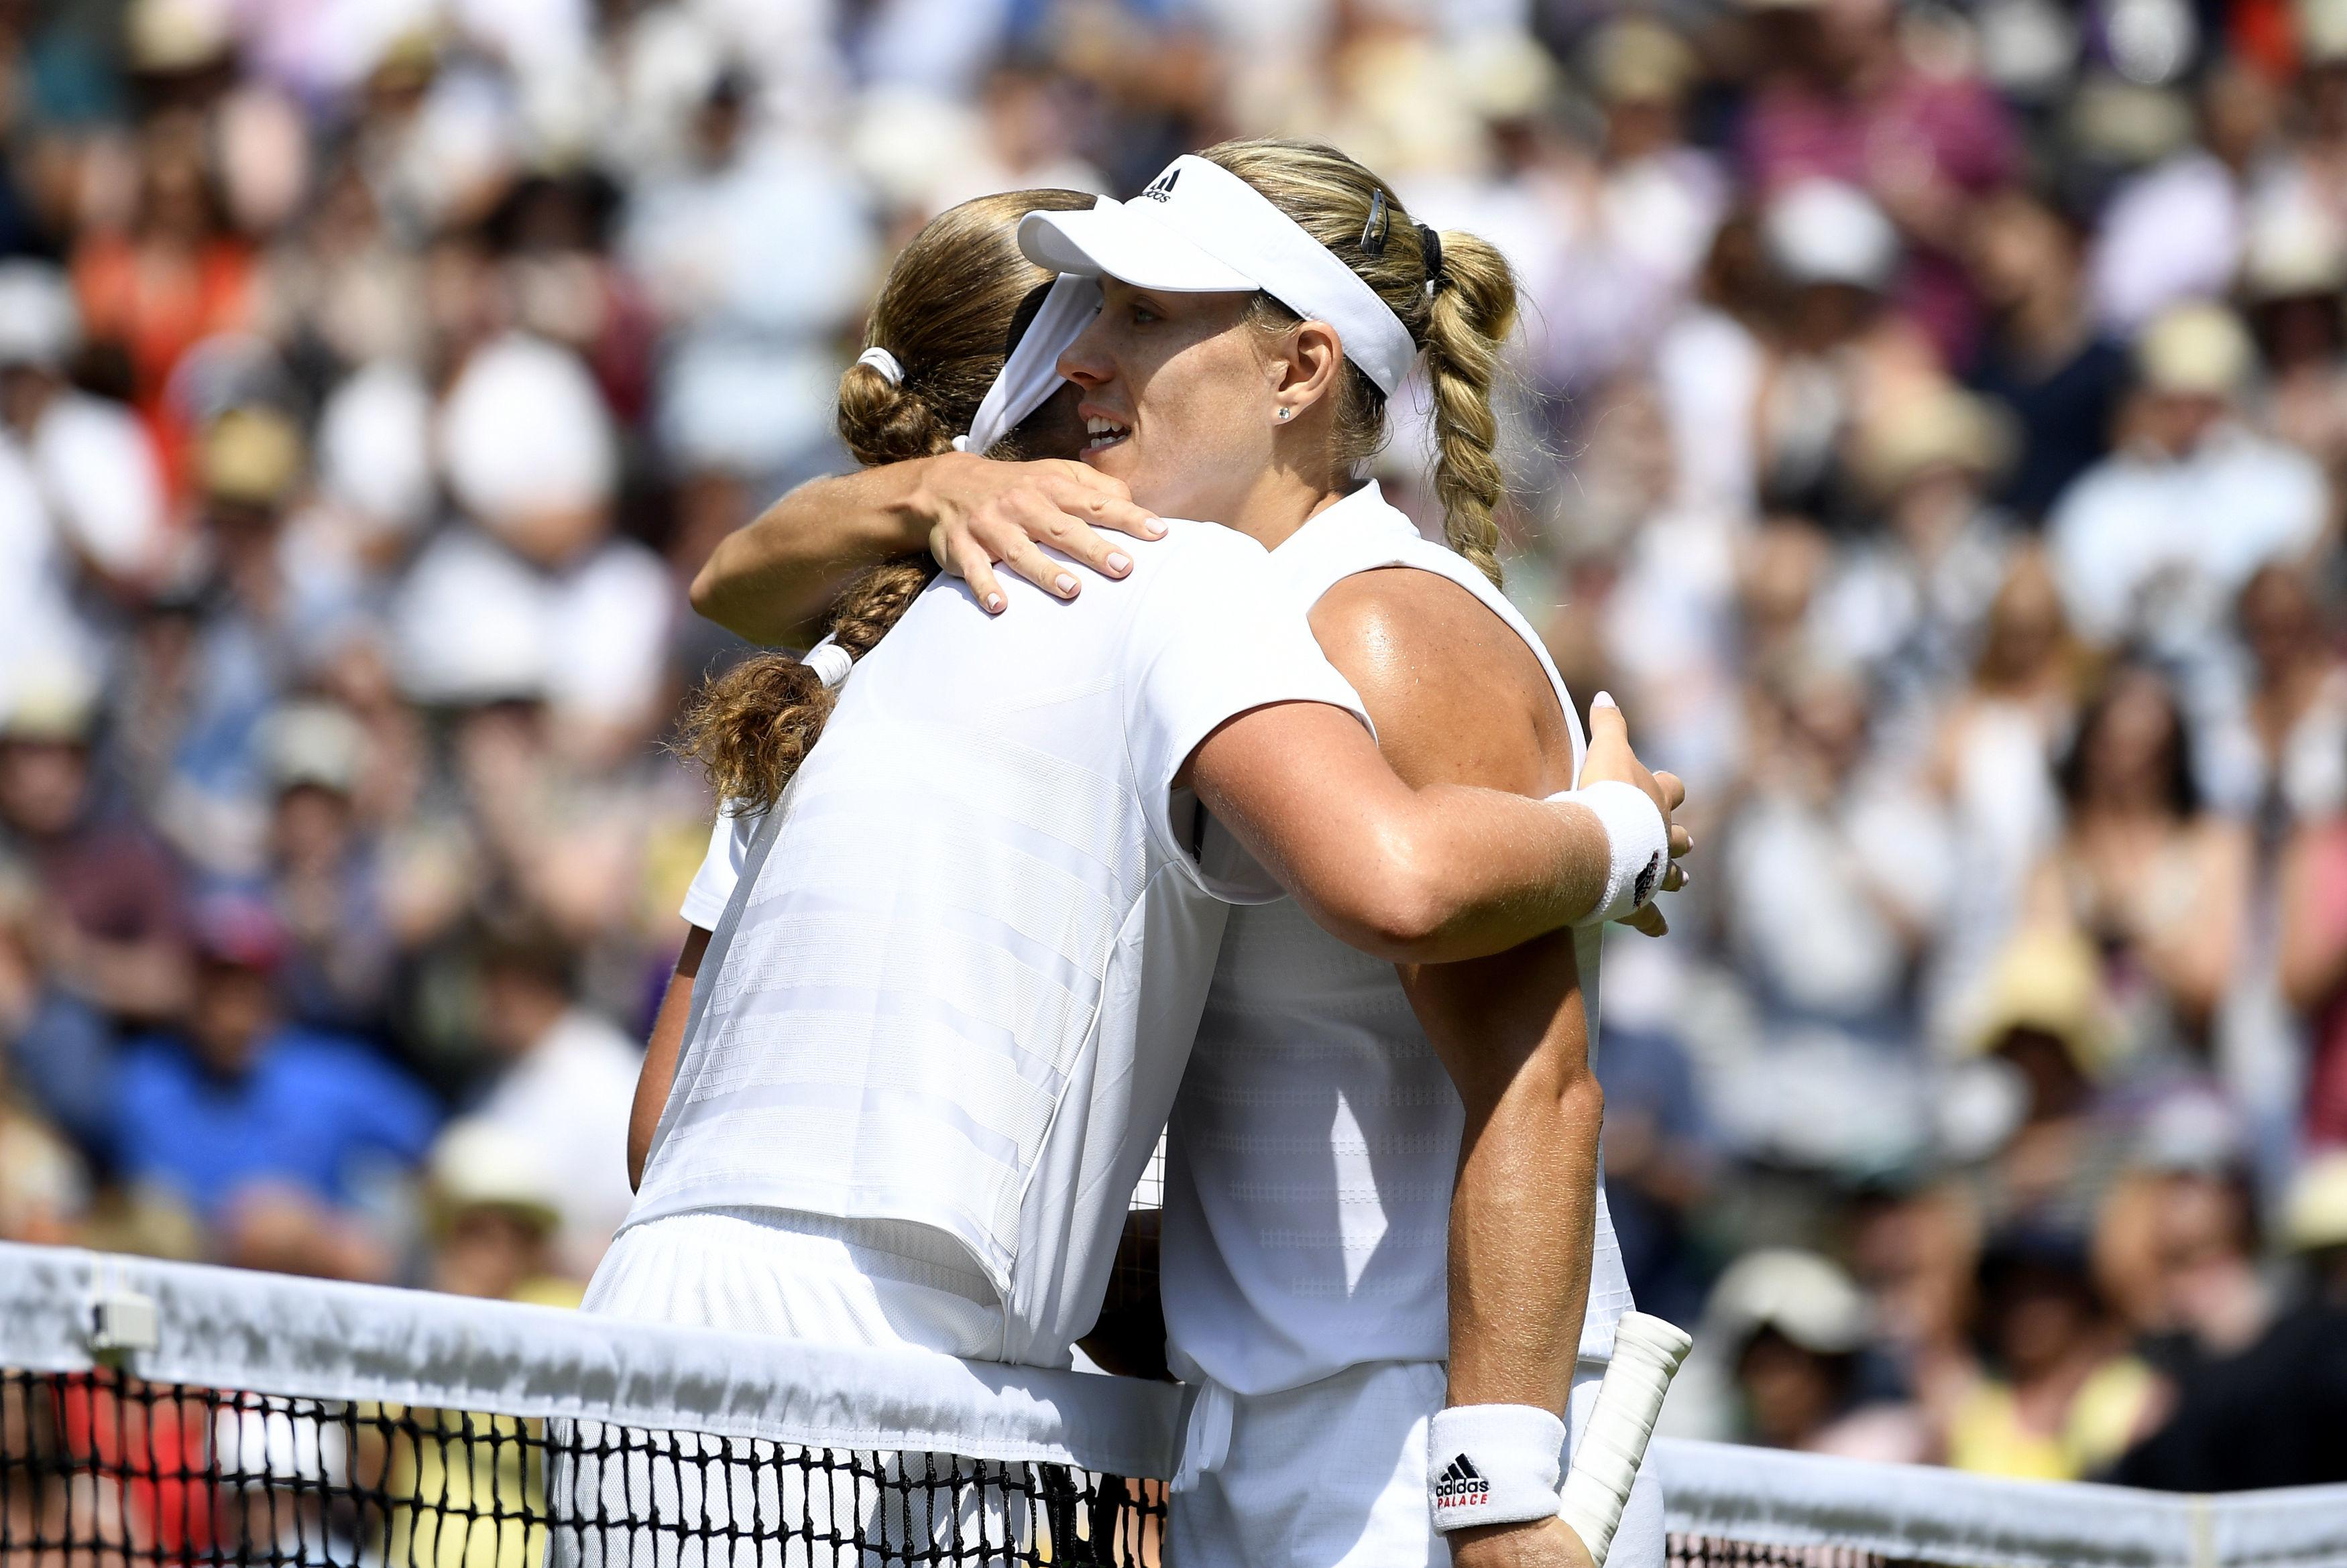 The pair hug after Kerber takes victory in straight sets